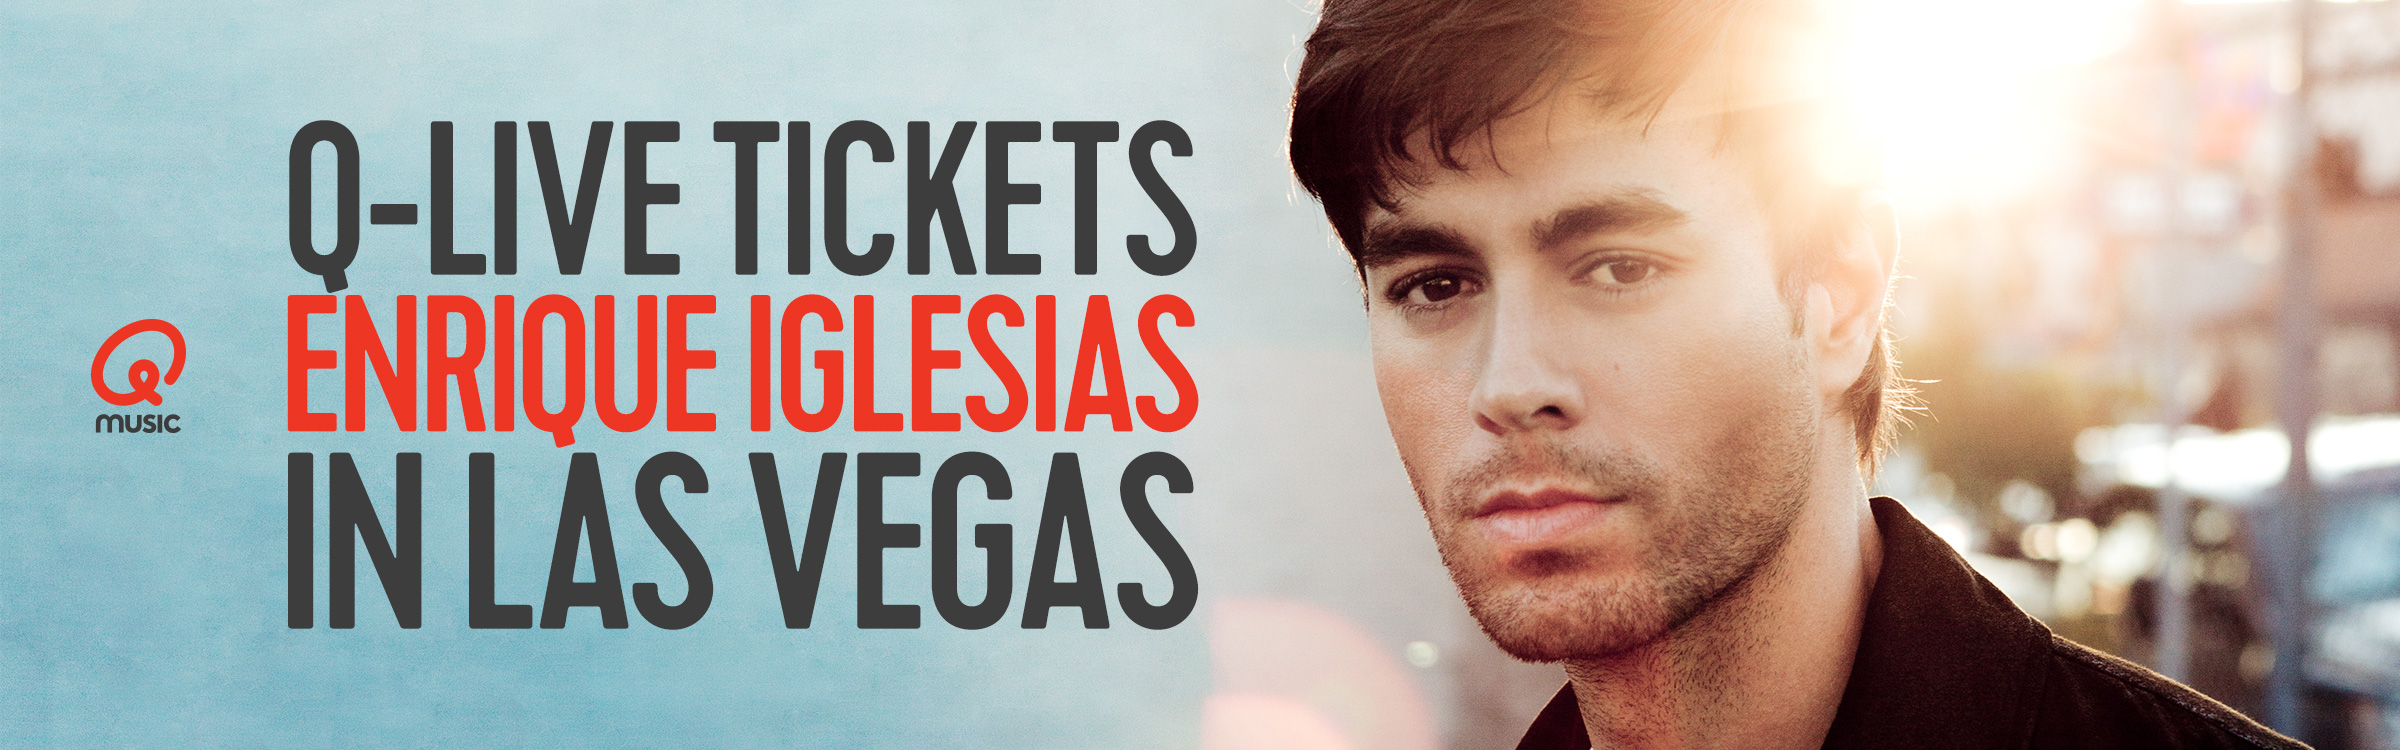 Qmusic actionheader enrique